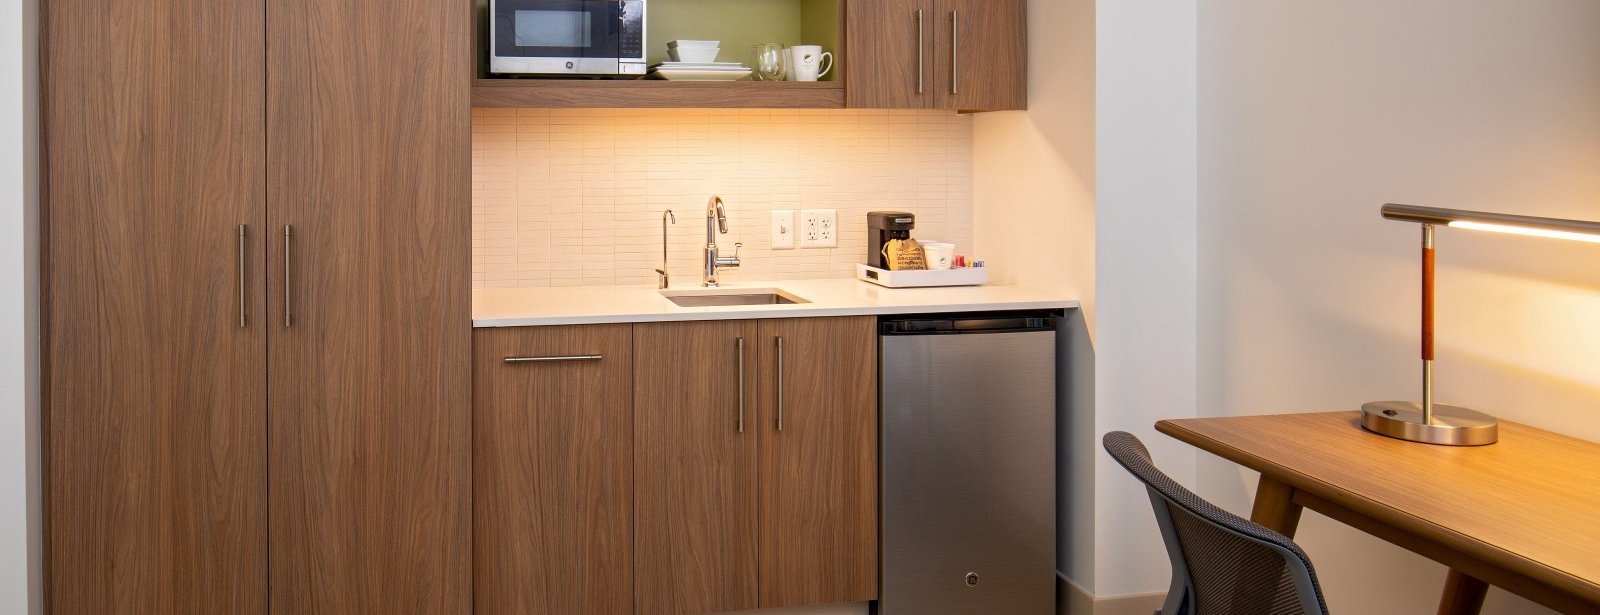 Moline Accommodations - King Guest Room Kitchen